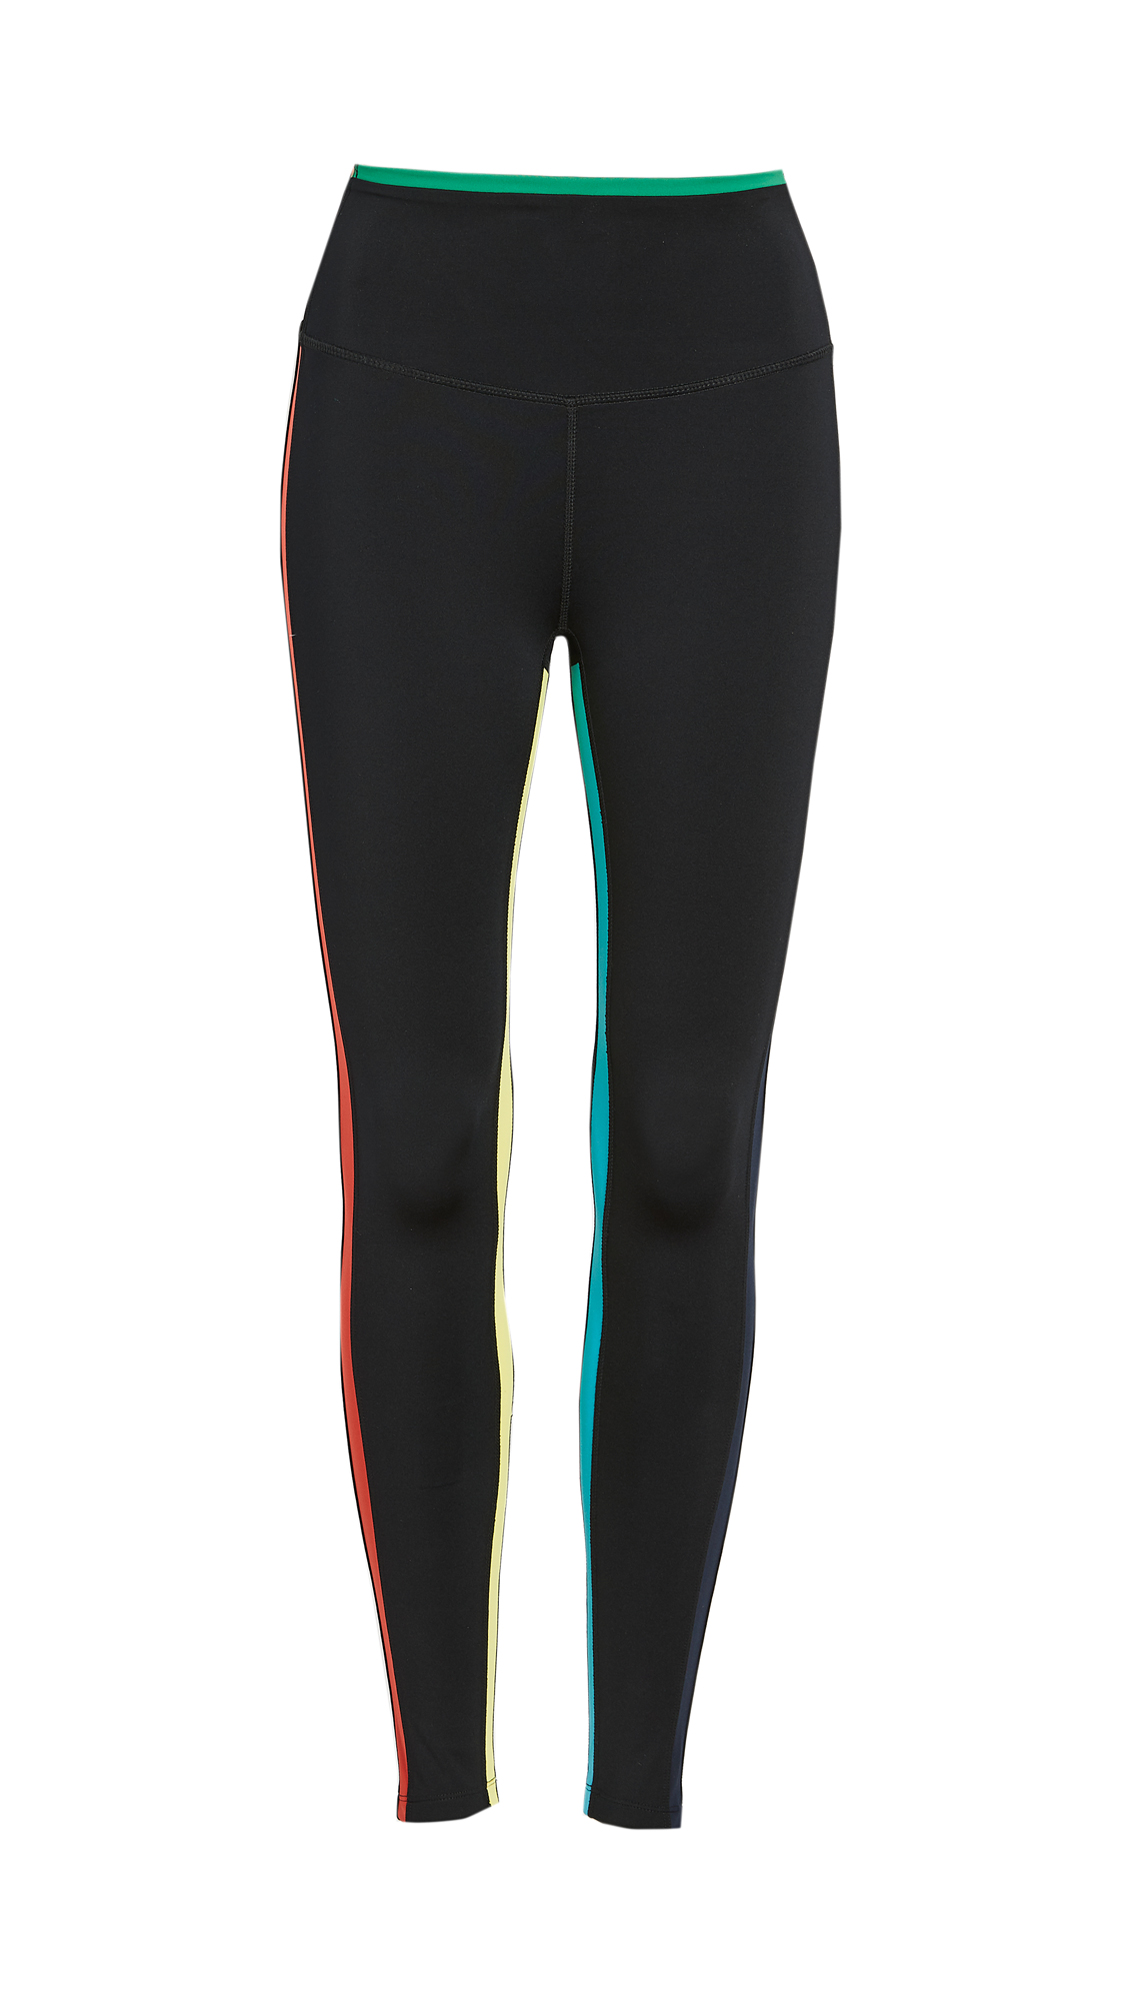 Splits59 Sam High Waist Powerflex 7/8 Leggings